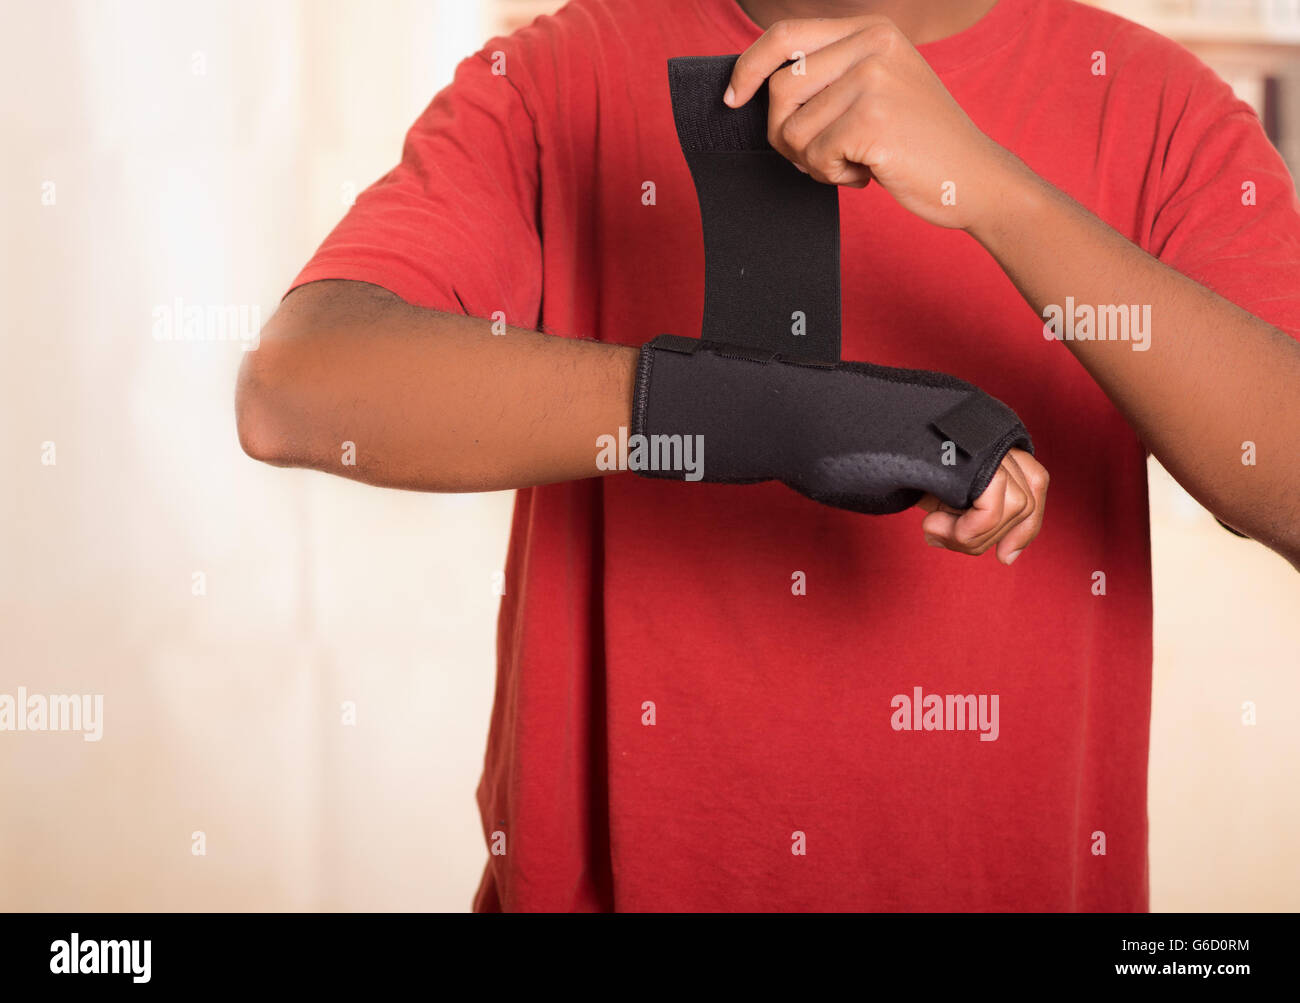 Closeup man in red shirt wearing black wrist brace support on right hand, tightening velcro using other arm - Stock Image